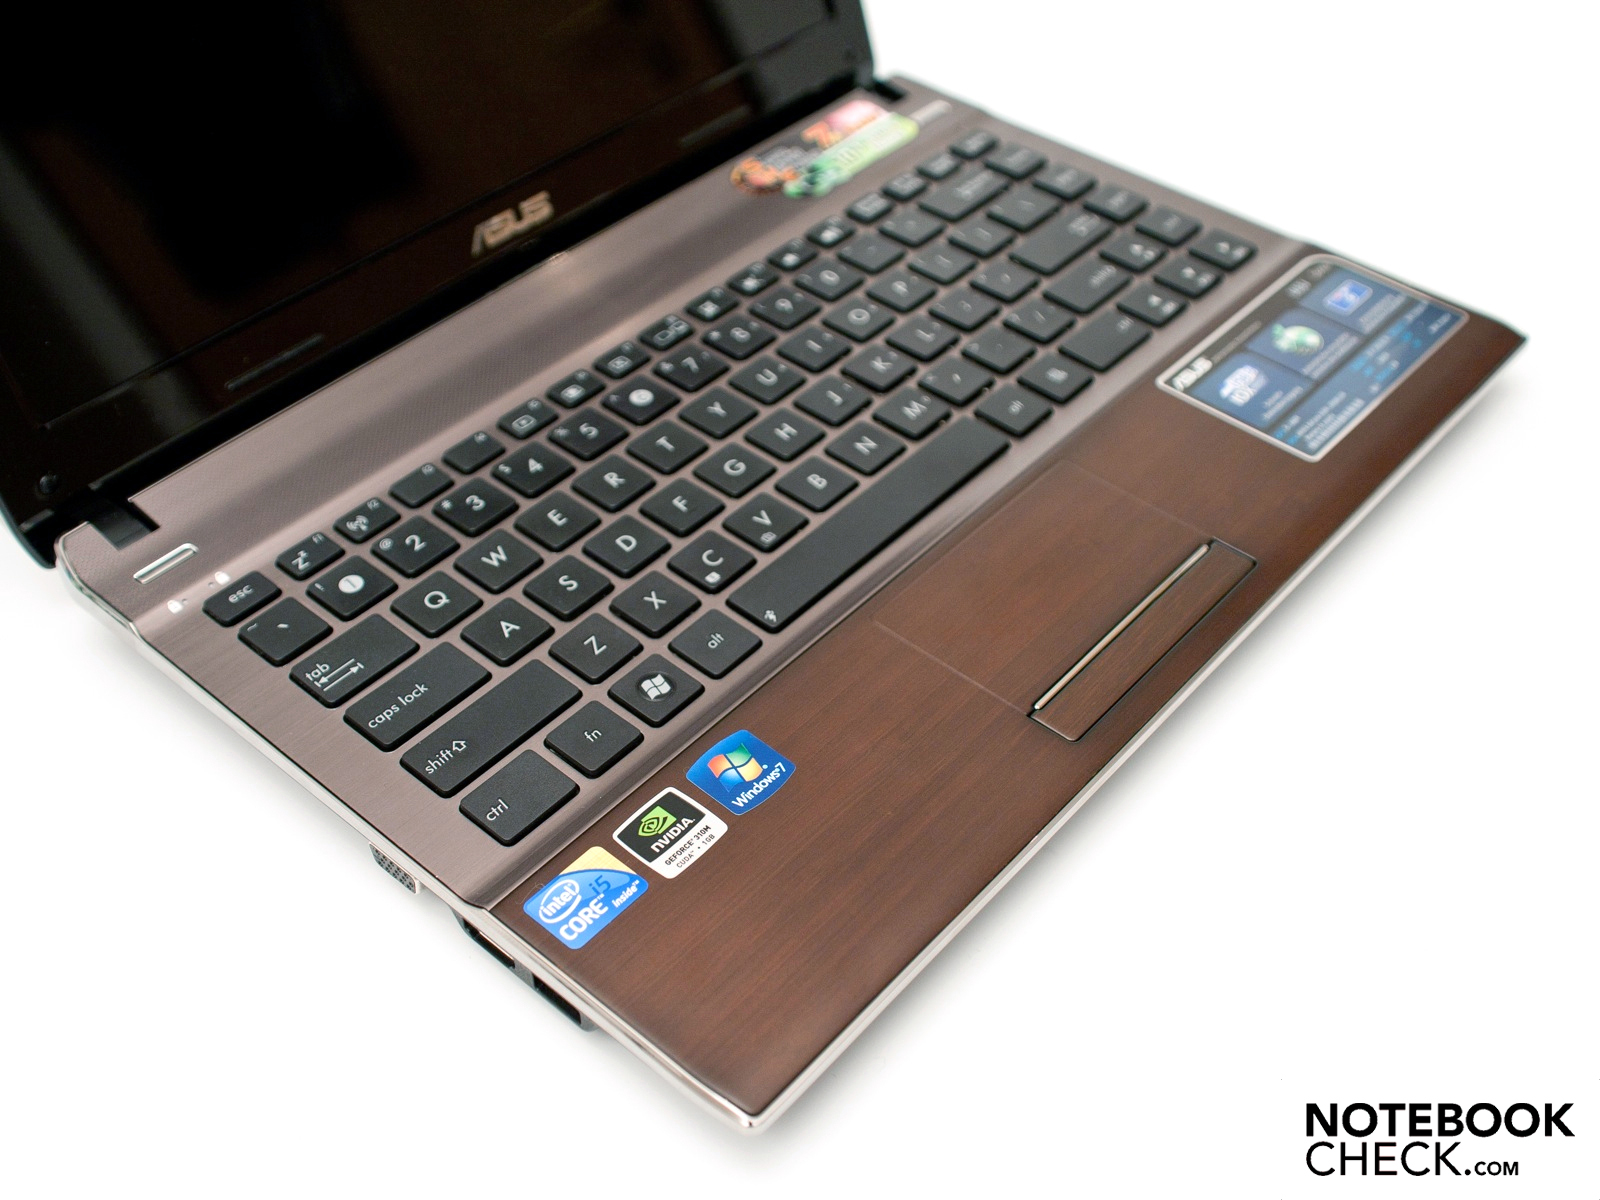 ASUS U33JC NOTEBOOK BLUETOOTH DRIVER DOWNLOAD